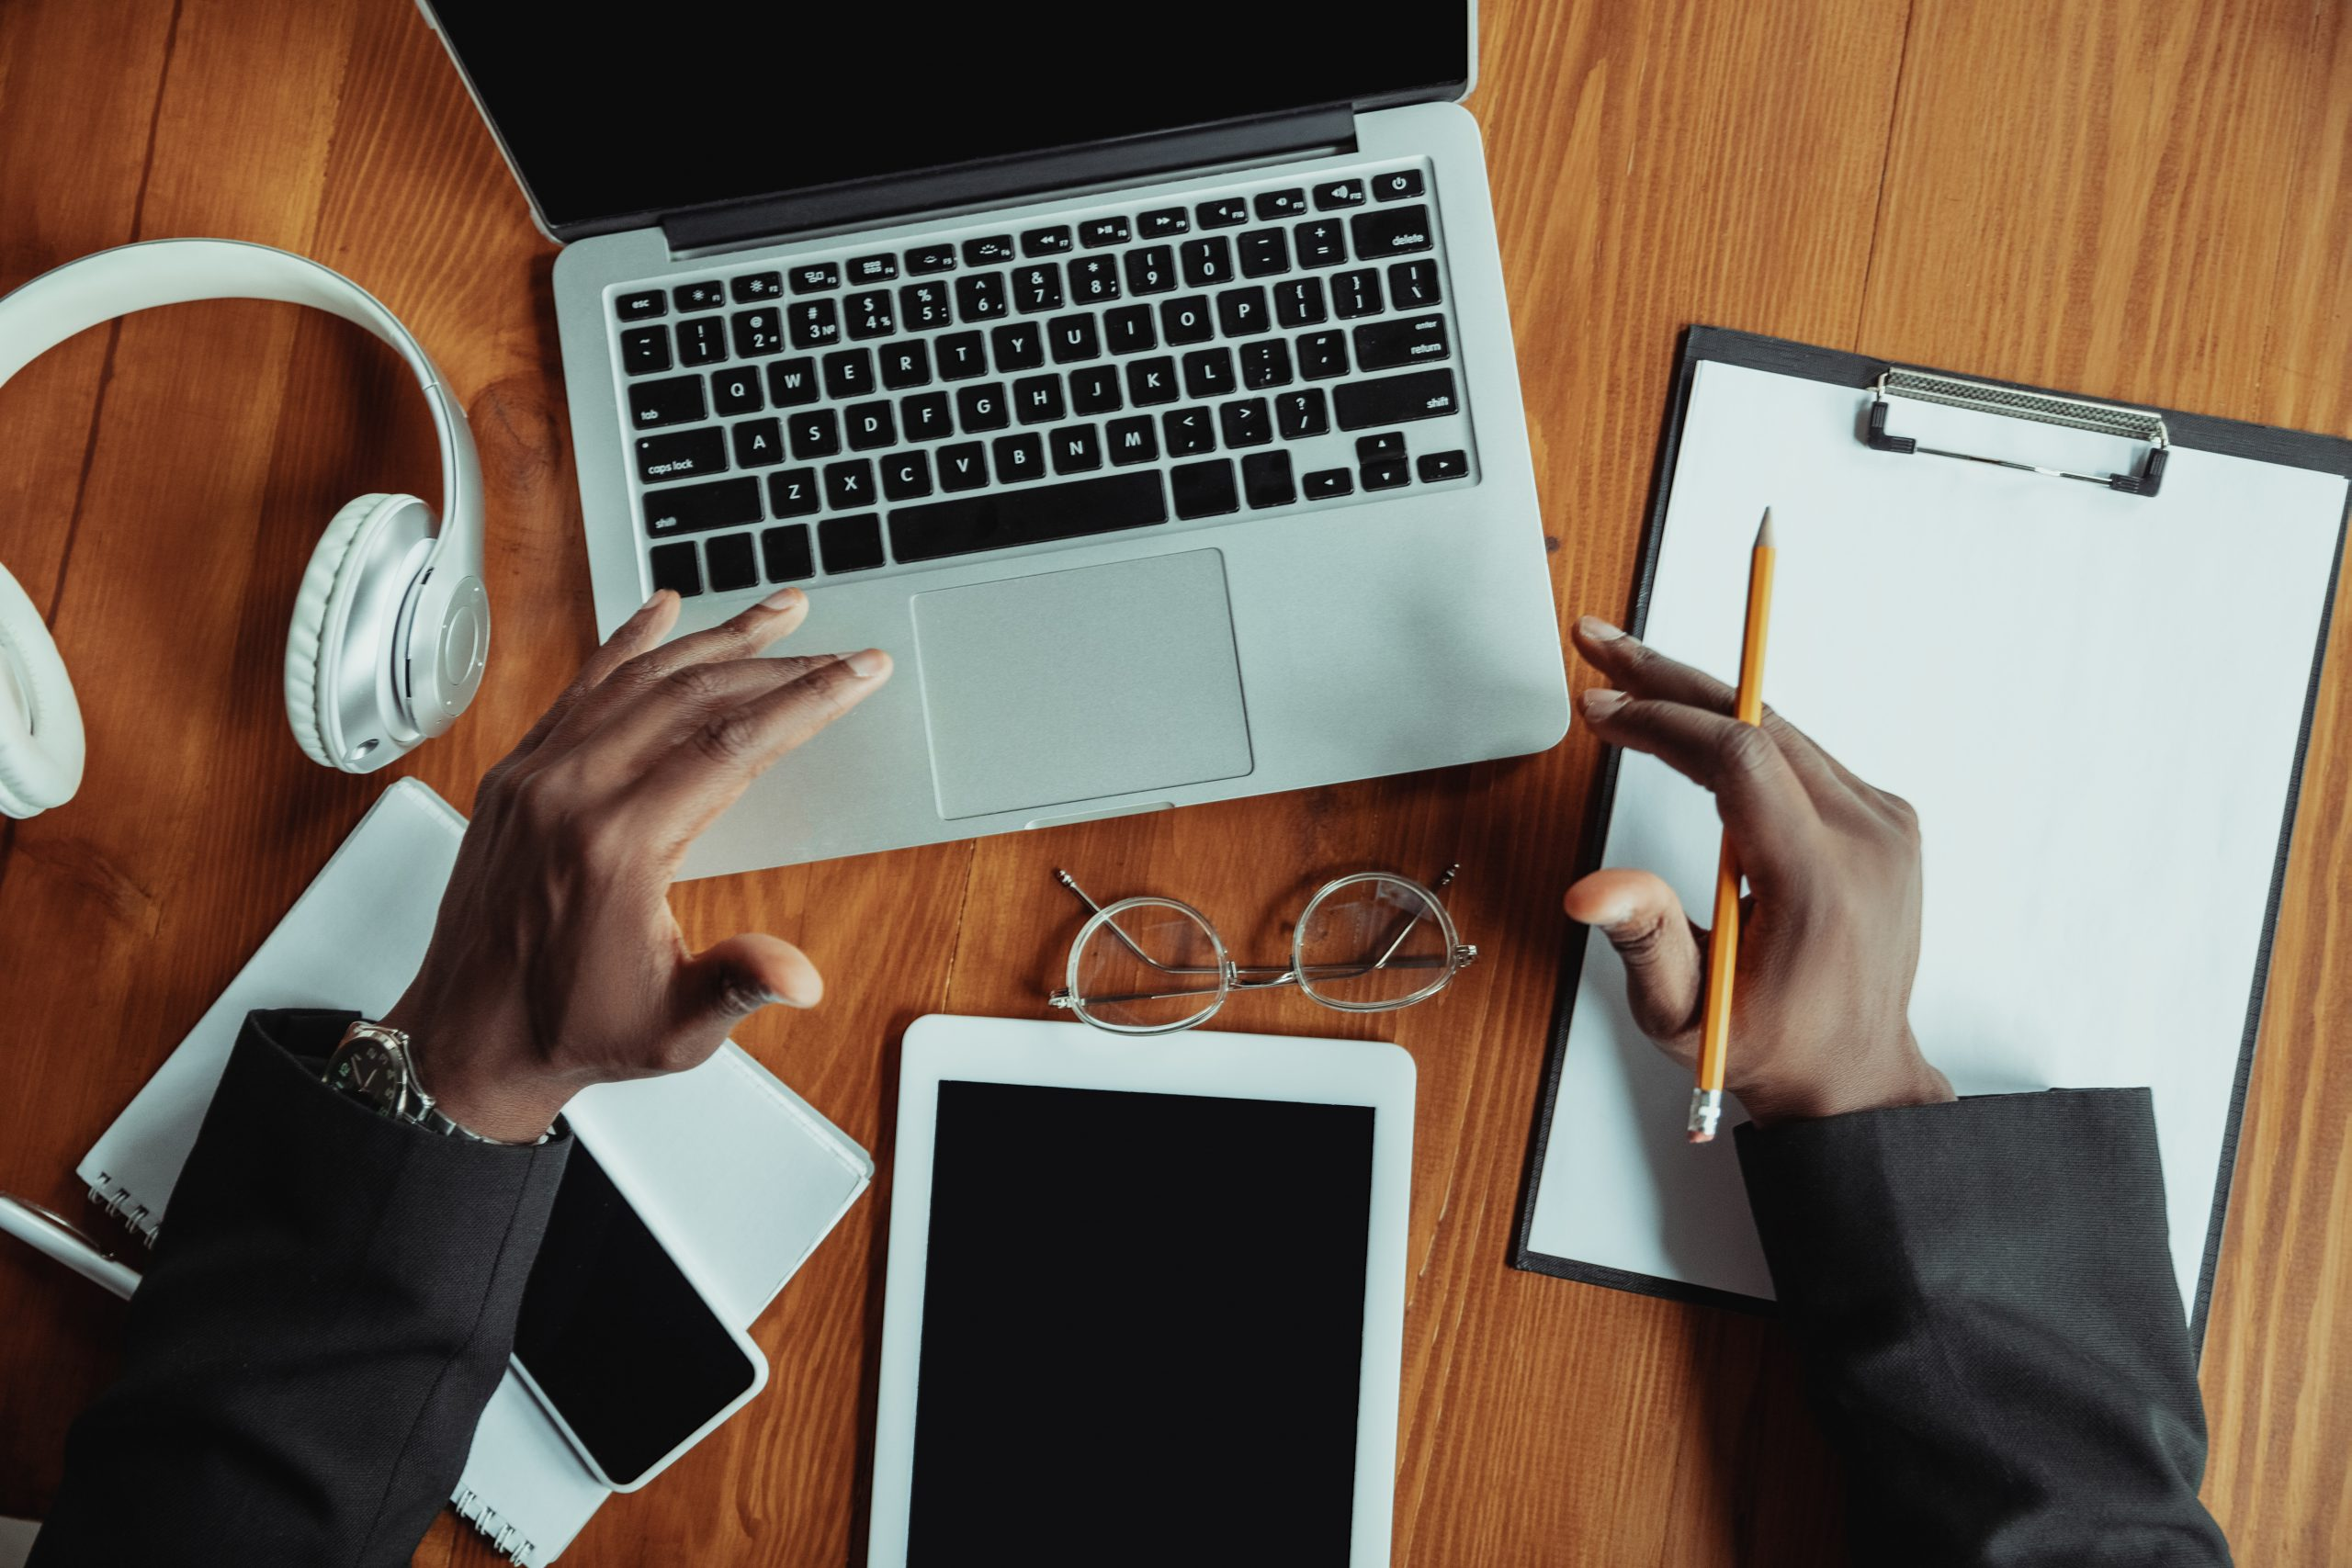 5 Ways To Increase Productivity While Working At Home (In an African Context)